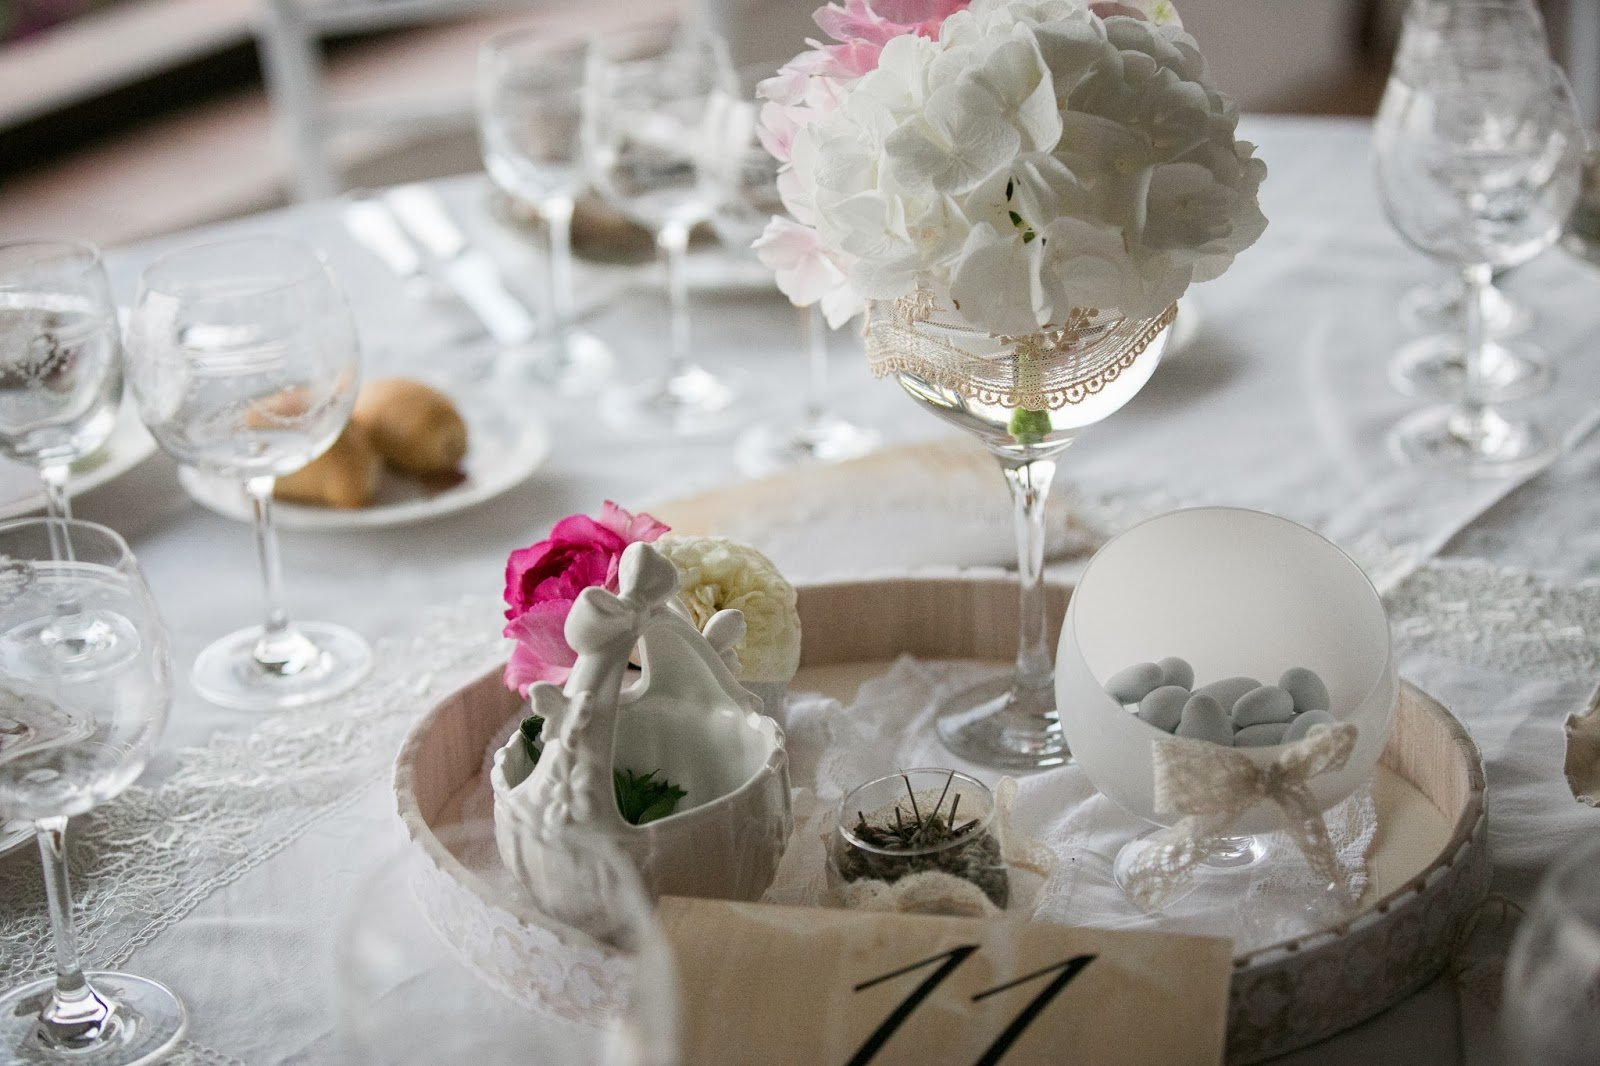 Matrimonio tra il vintage e il country chic - image Bianca_e_Nobile0883 on http://www.designedoo.it